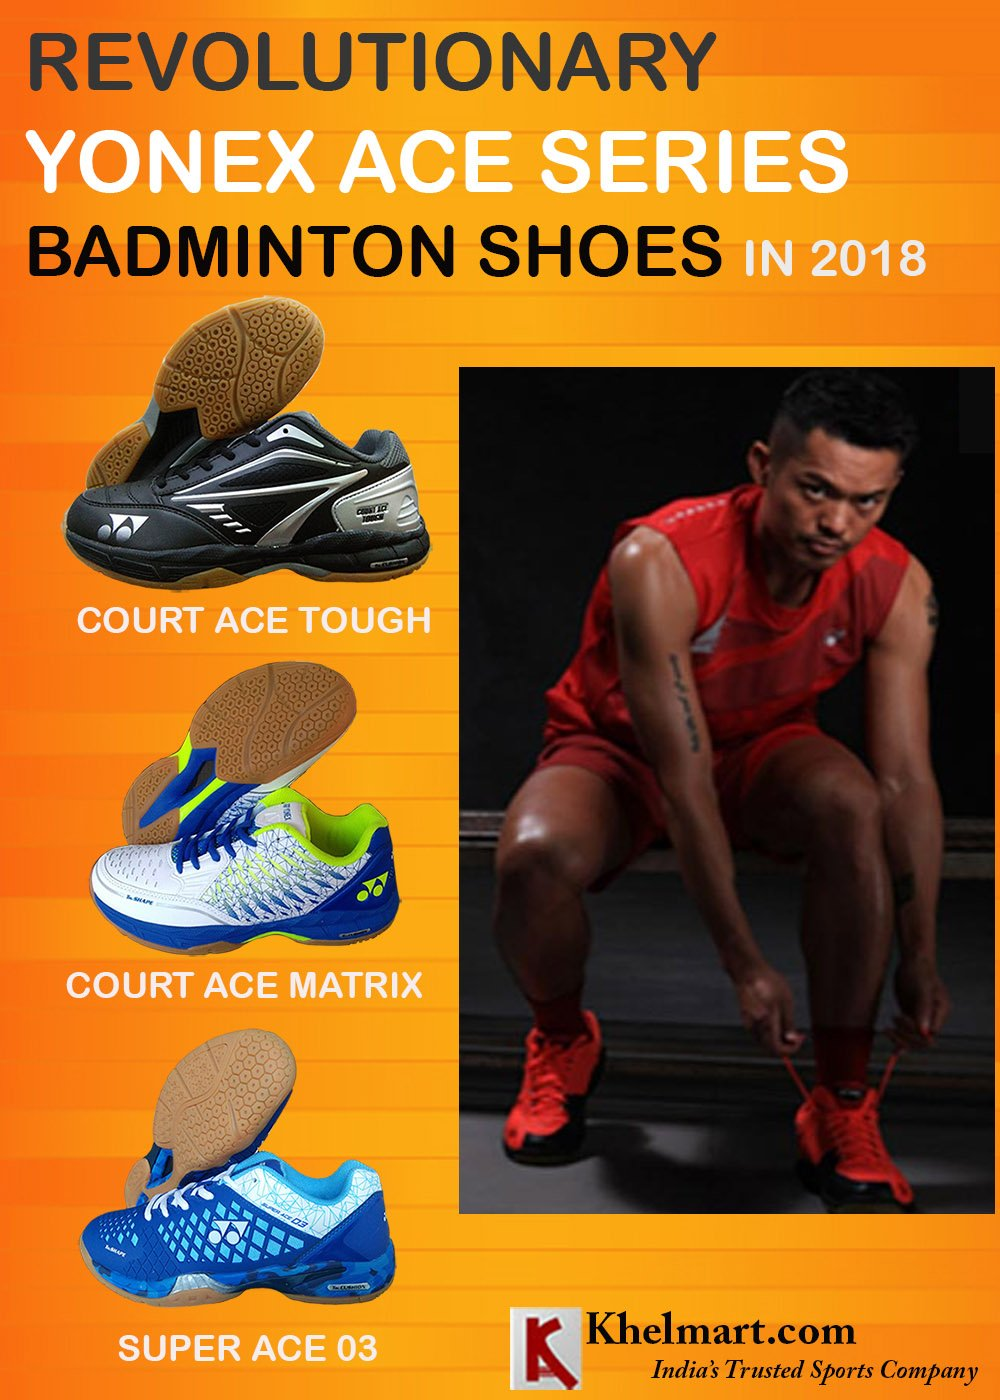 Revolutionary-Yonex-ACE-Series-Badminton-Shoes-In-2018_1.jpg